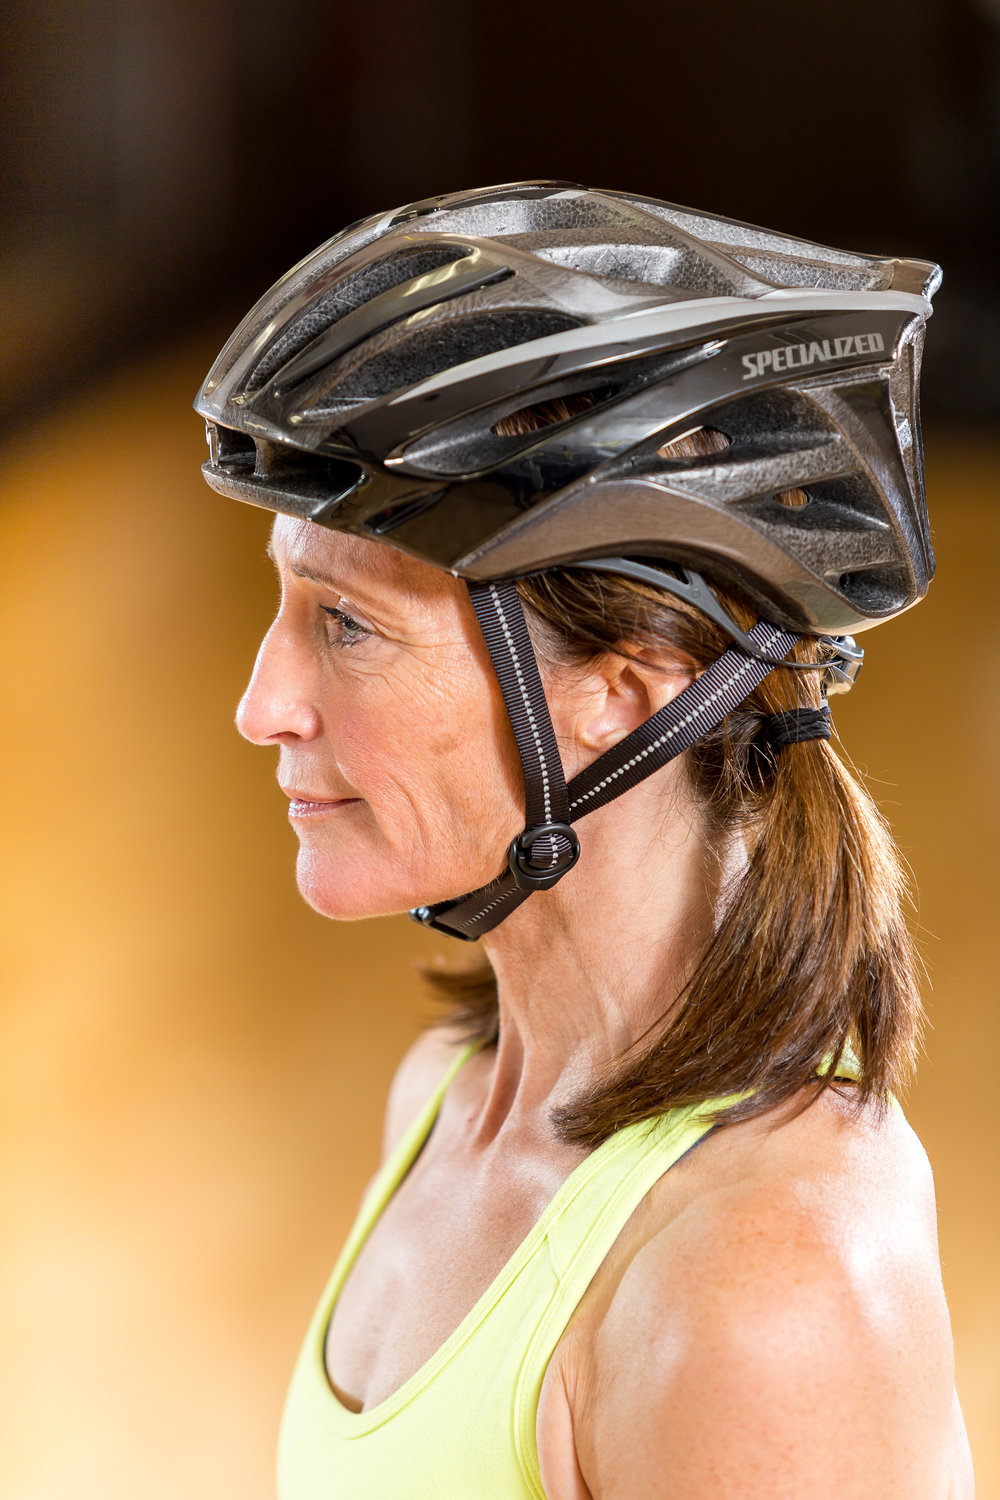 Robin demonstrates a  properly fitting helmet which covers your forehead, and the straps should be snug.